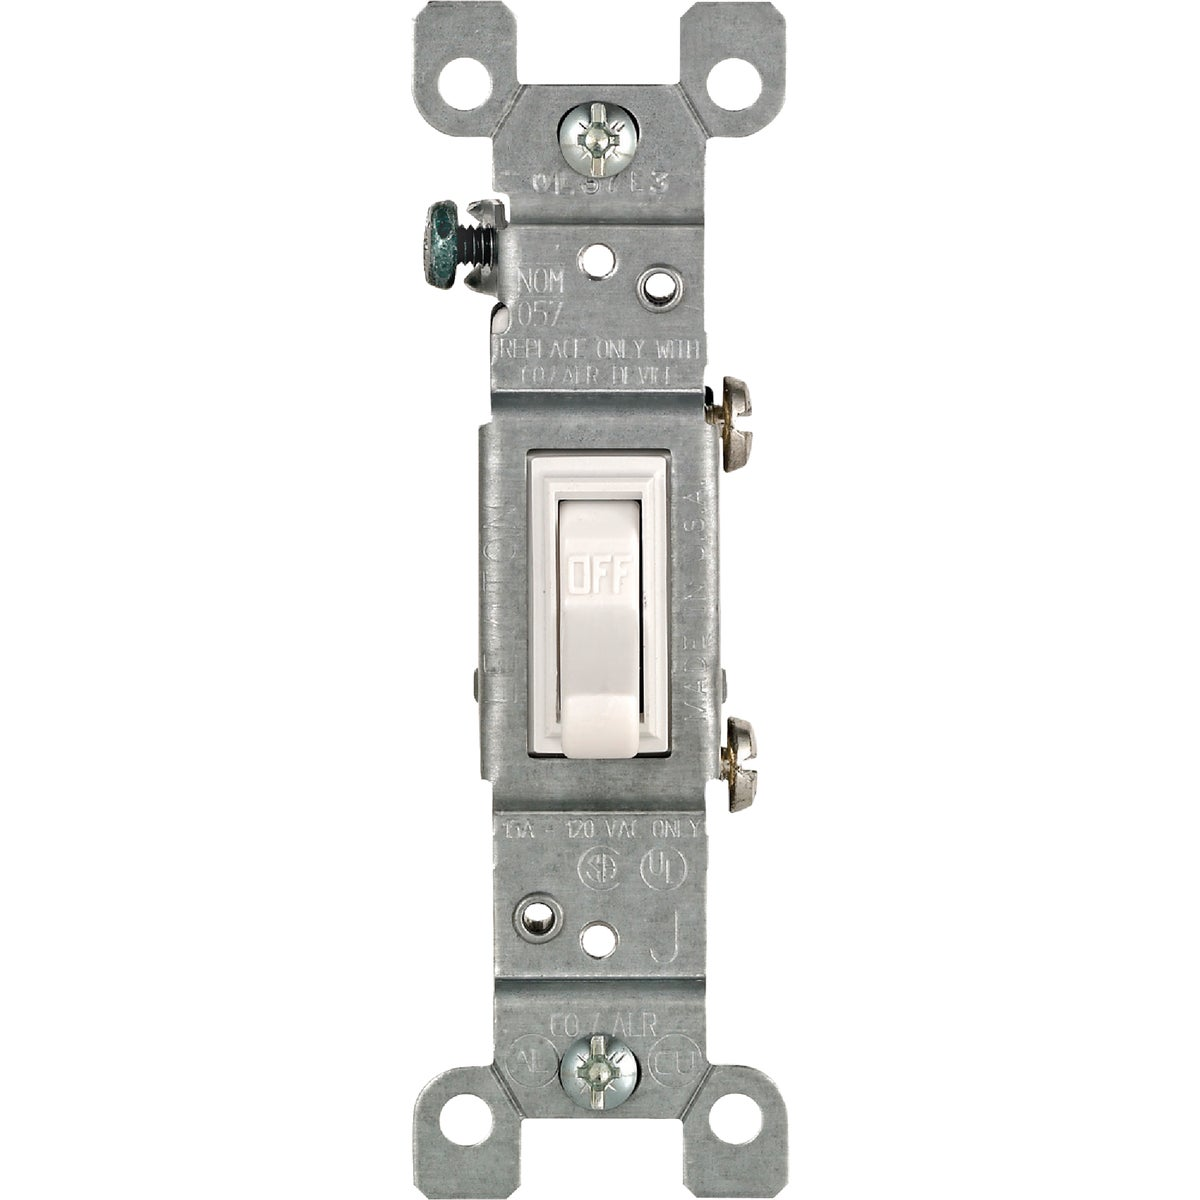 WHITE COPPER/ALUM SWITCH - 208-2651-2W by Leviton Mfg Co